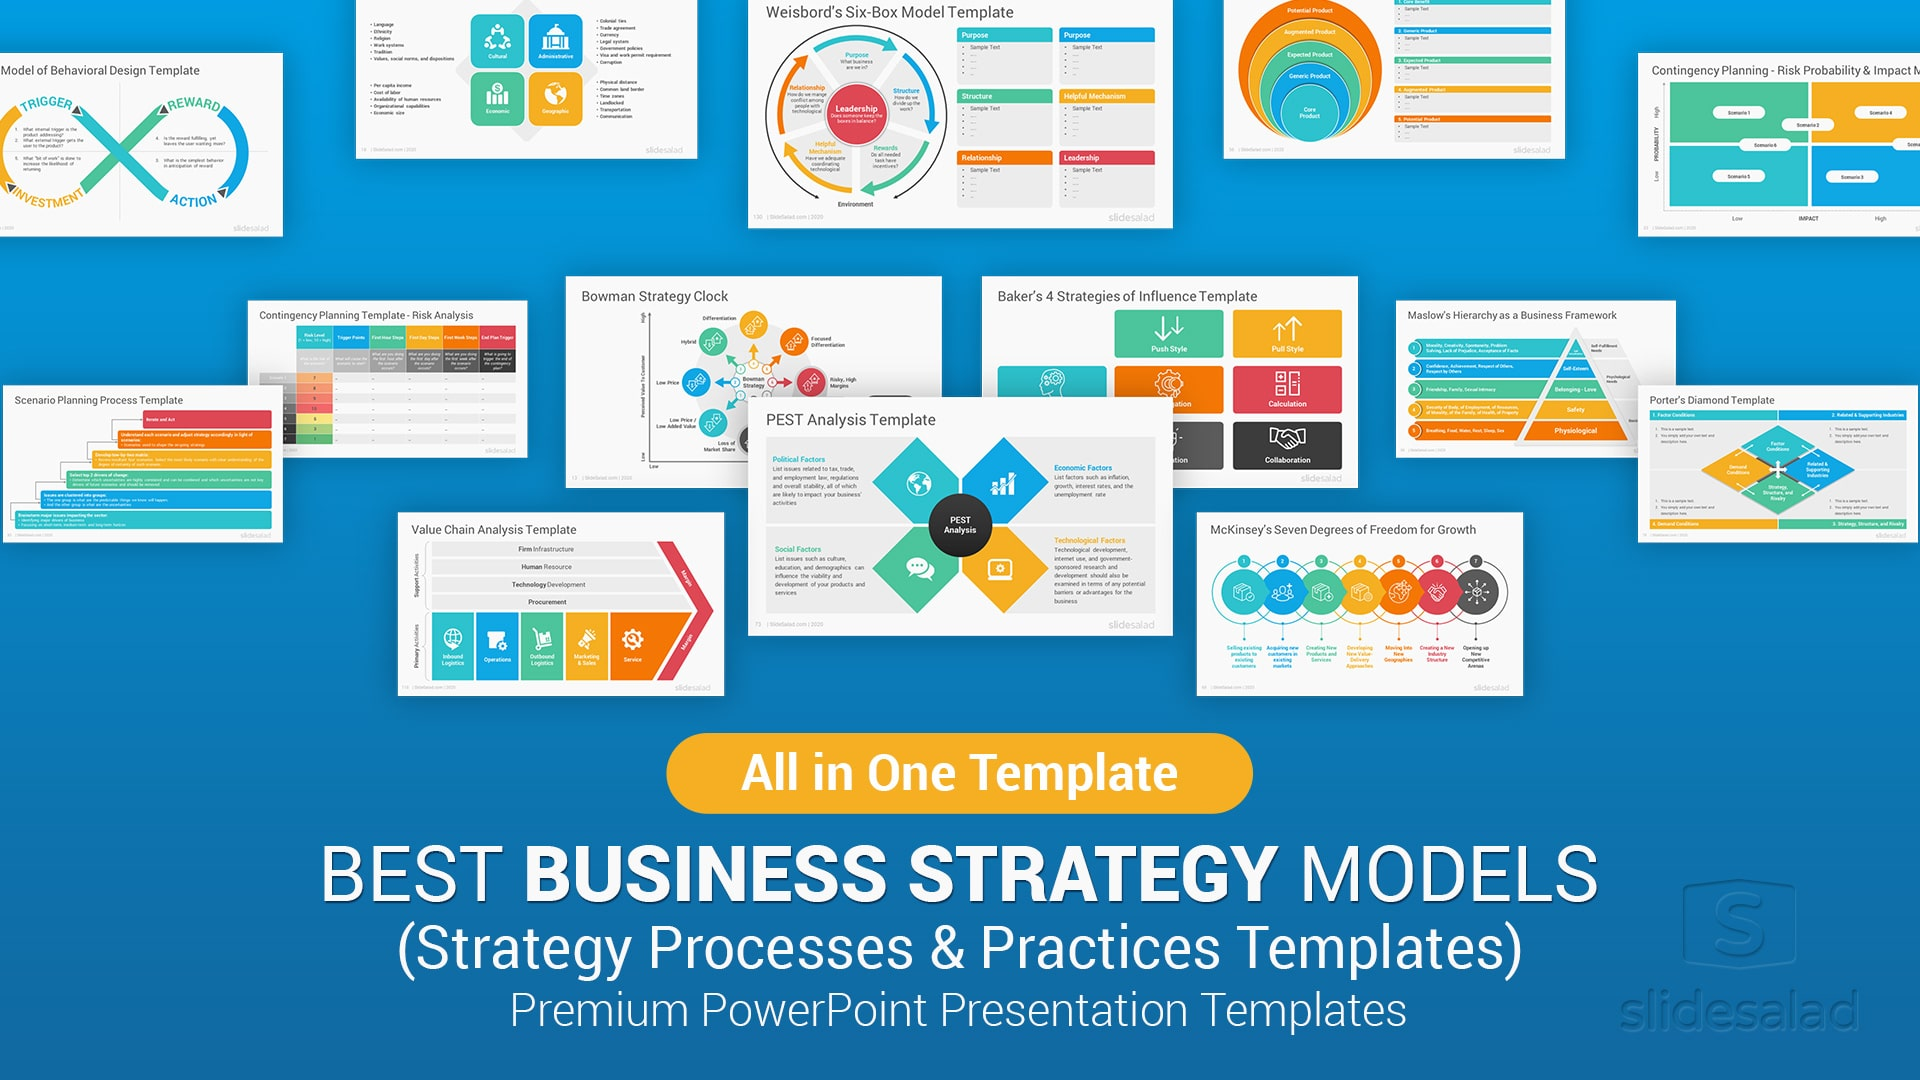 100 Best Business Strategy Powerpoint Ppt Templates For Presentations For 2021 Slidesalad